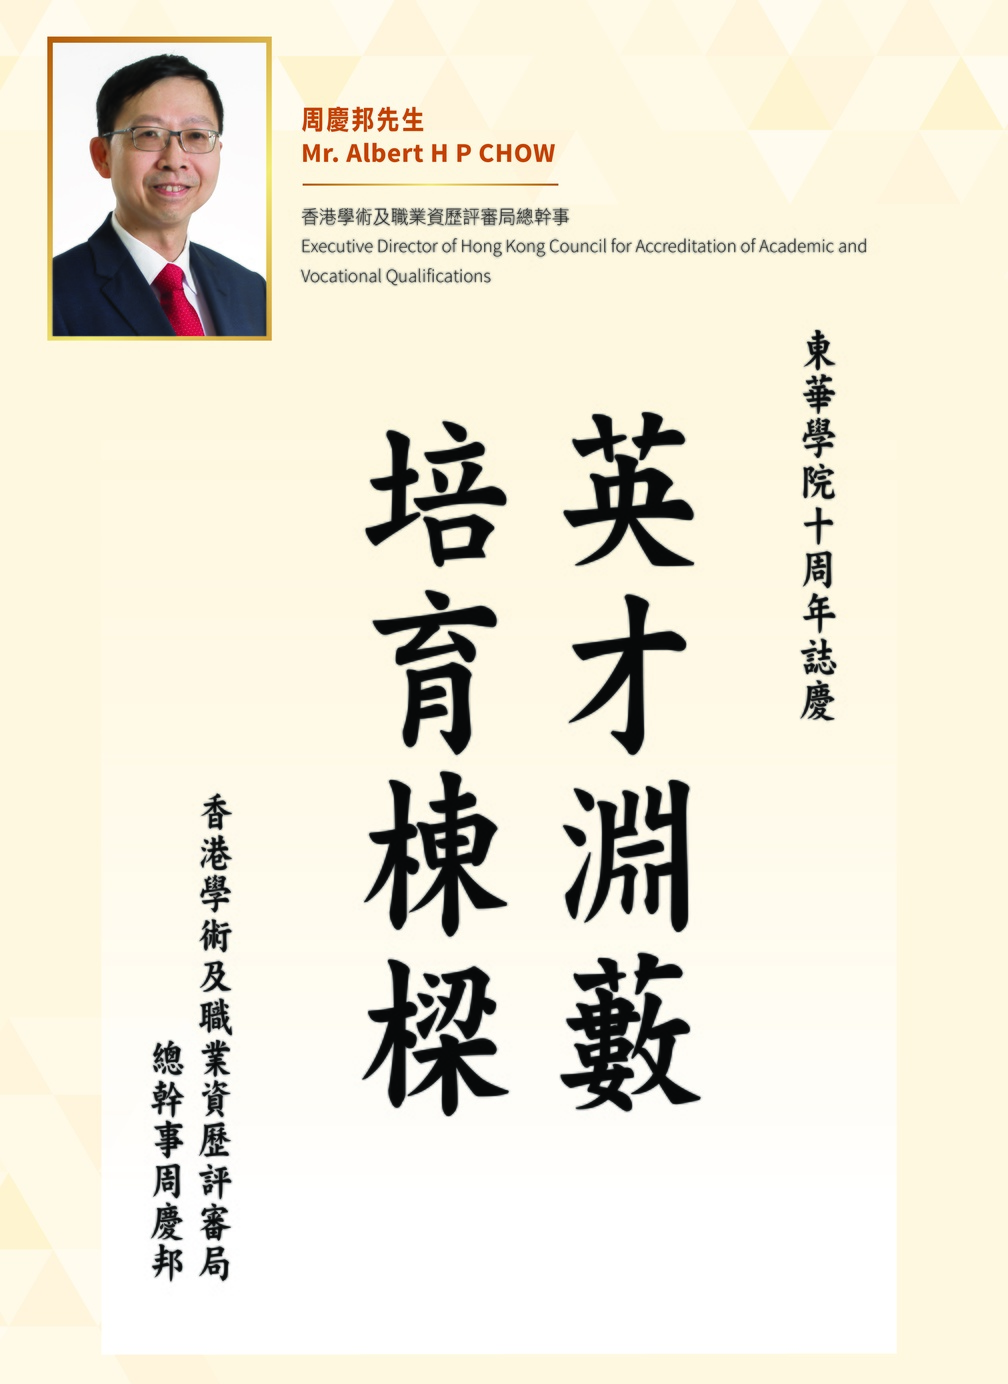 Executive Director of Hong Kong Council for Accreditation of Academic and Vocational Qualifications